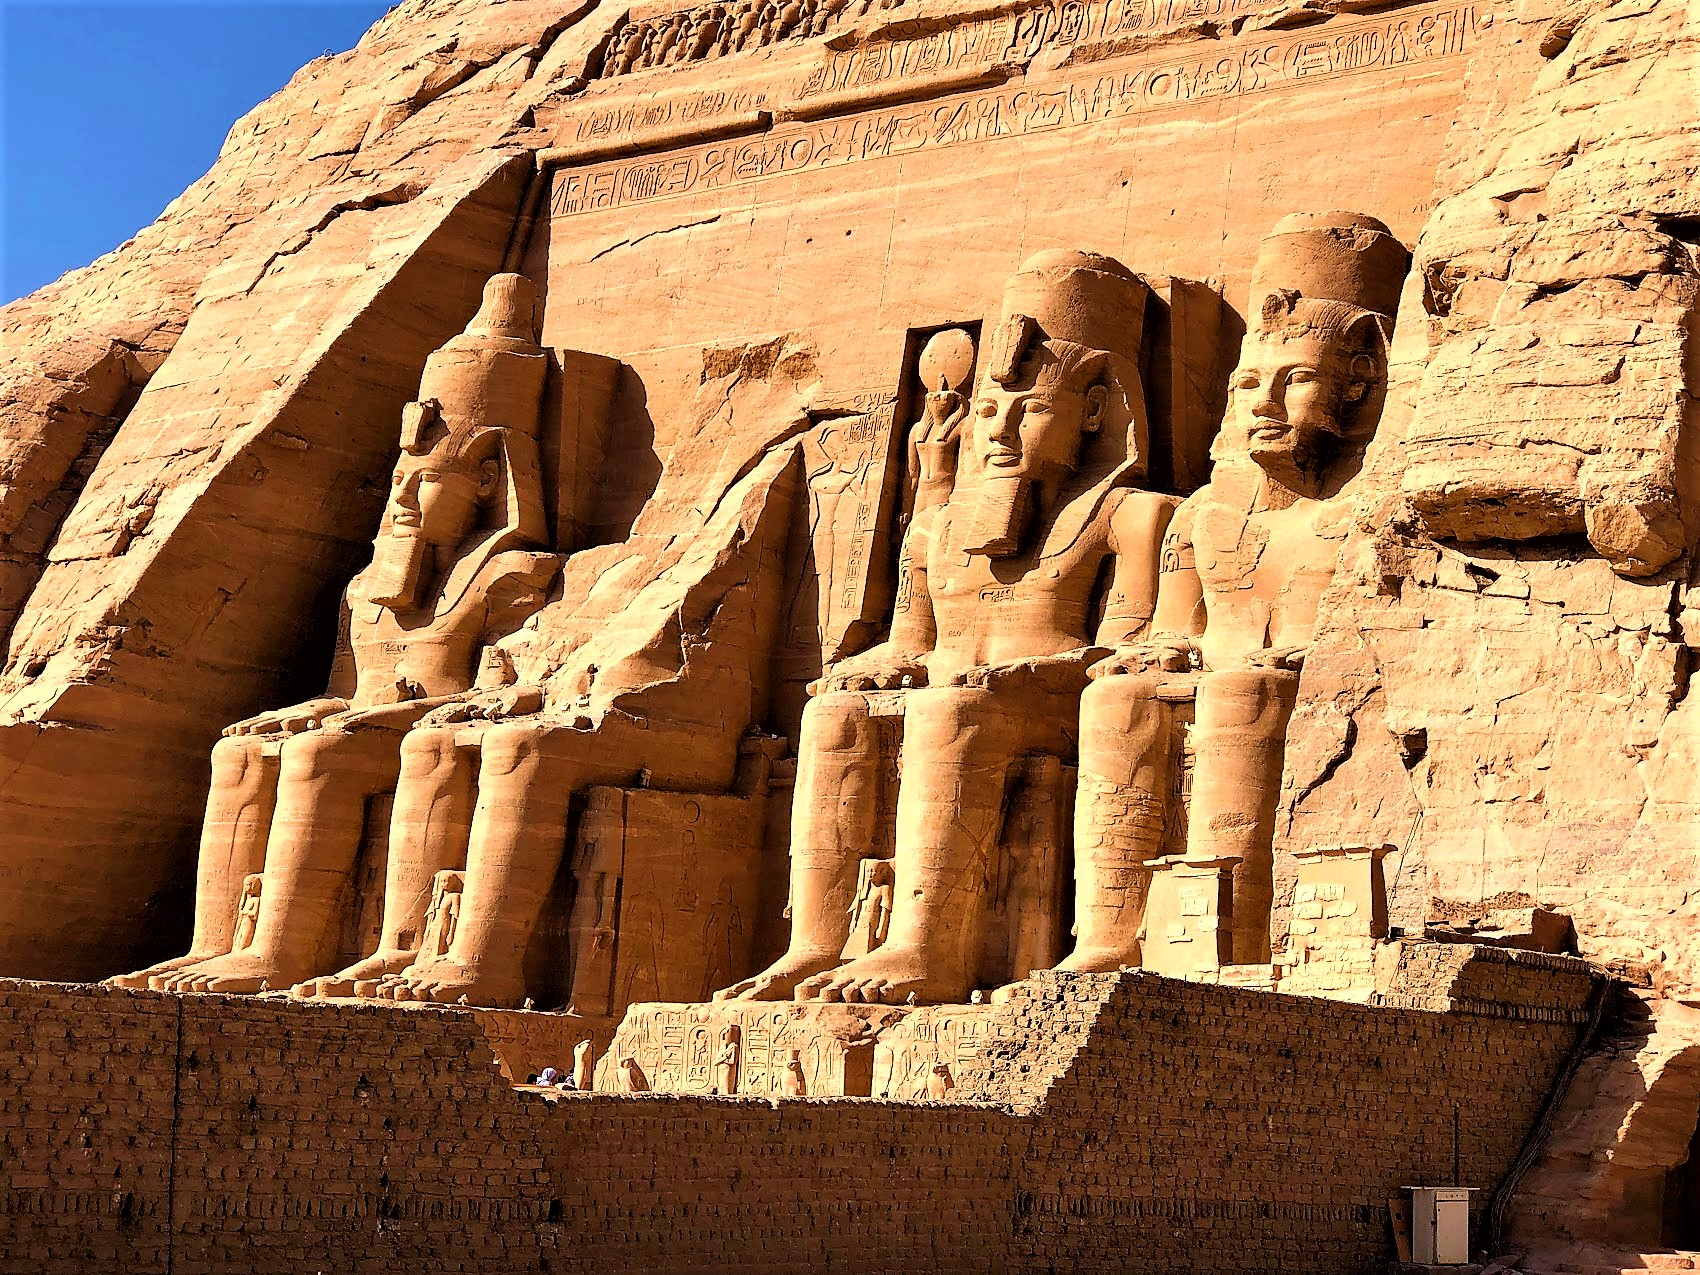 Explore Egypt - Other things to see and do in Egypt